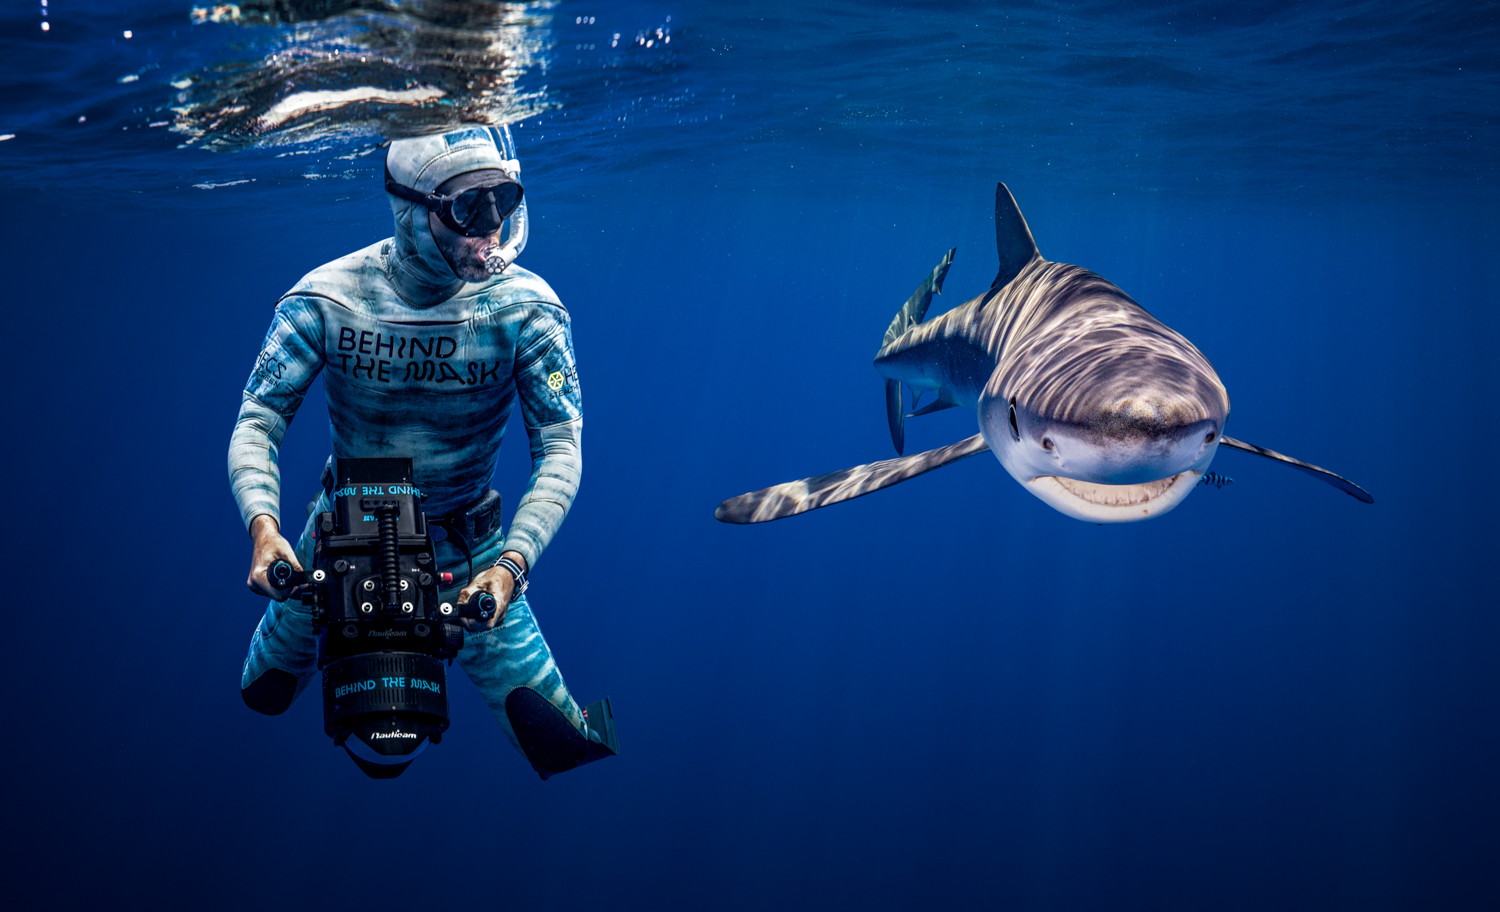 A diver films next to a blue shark